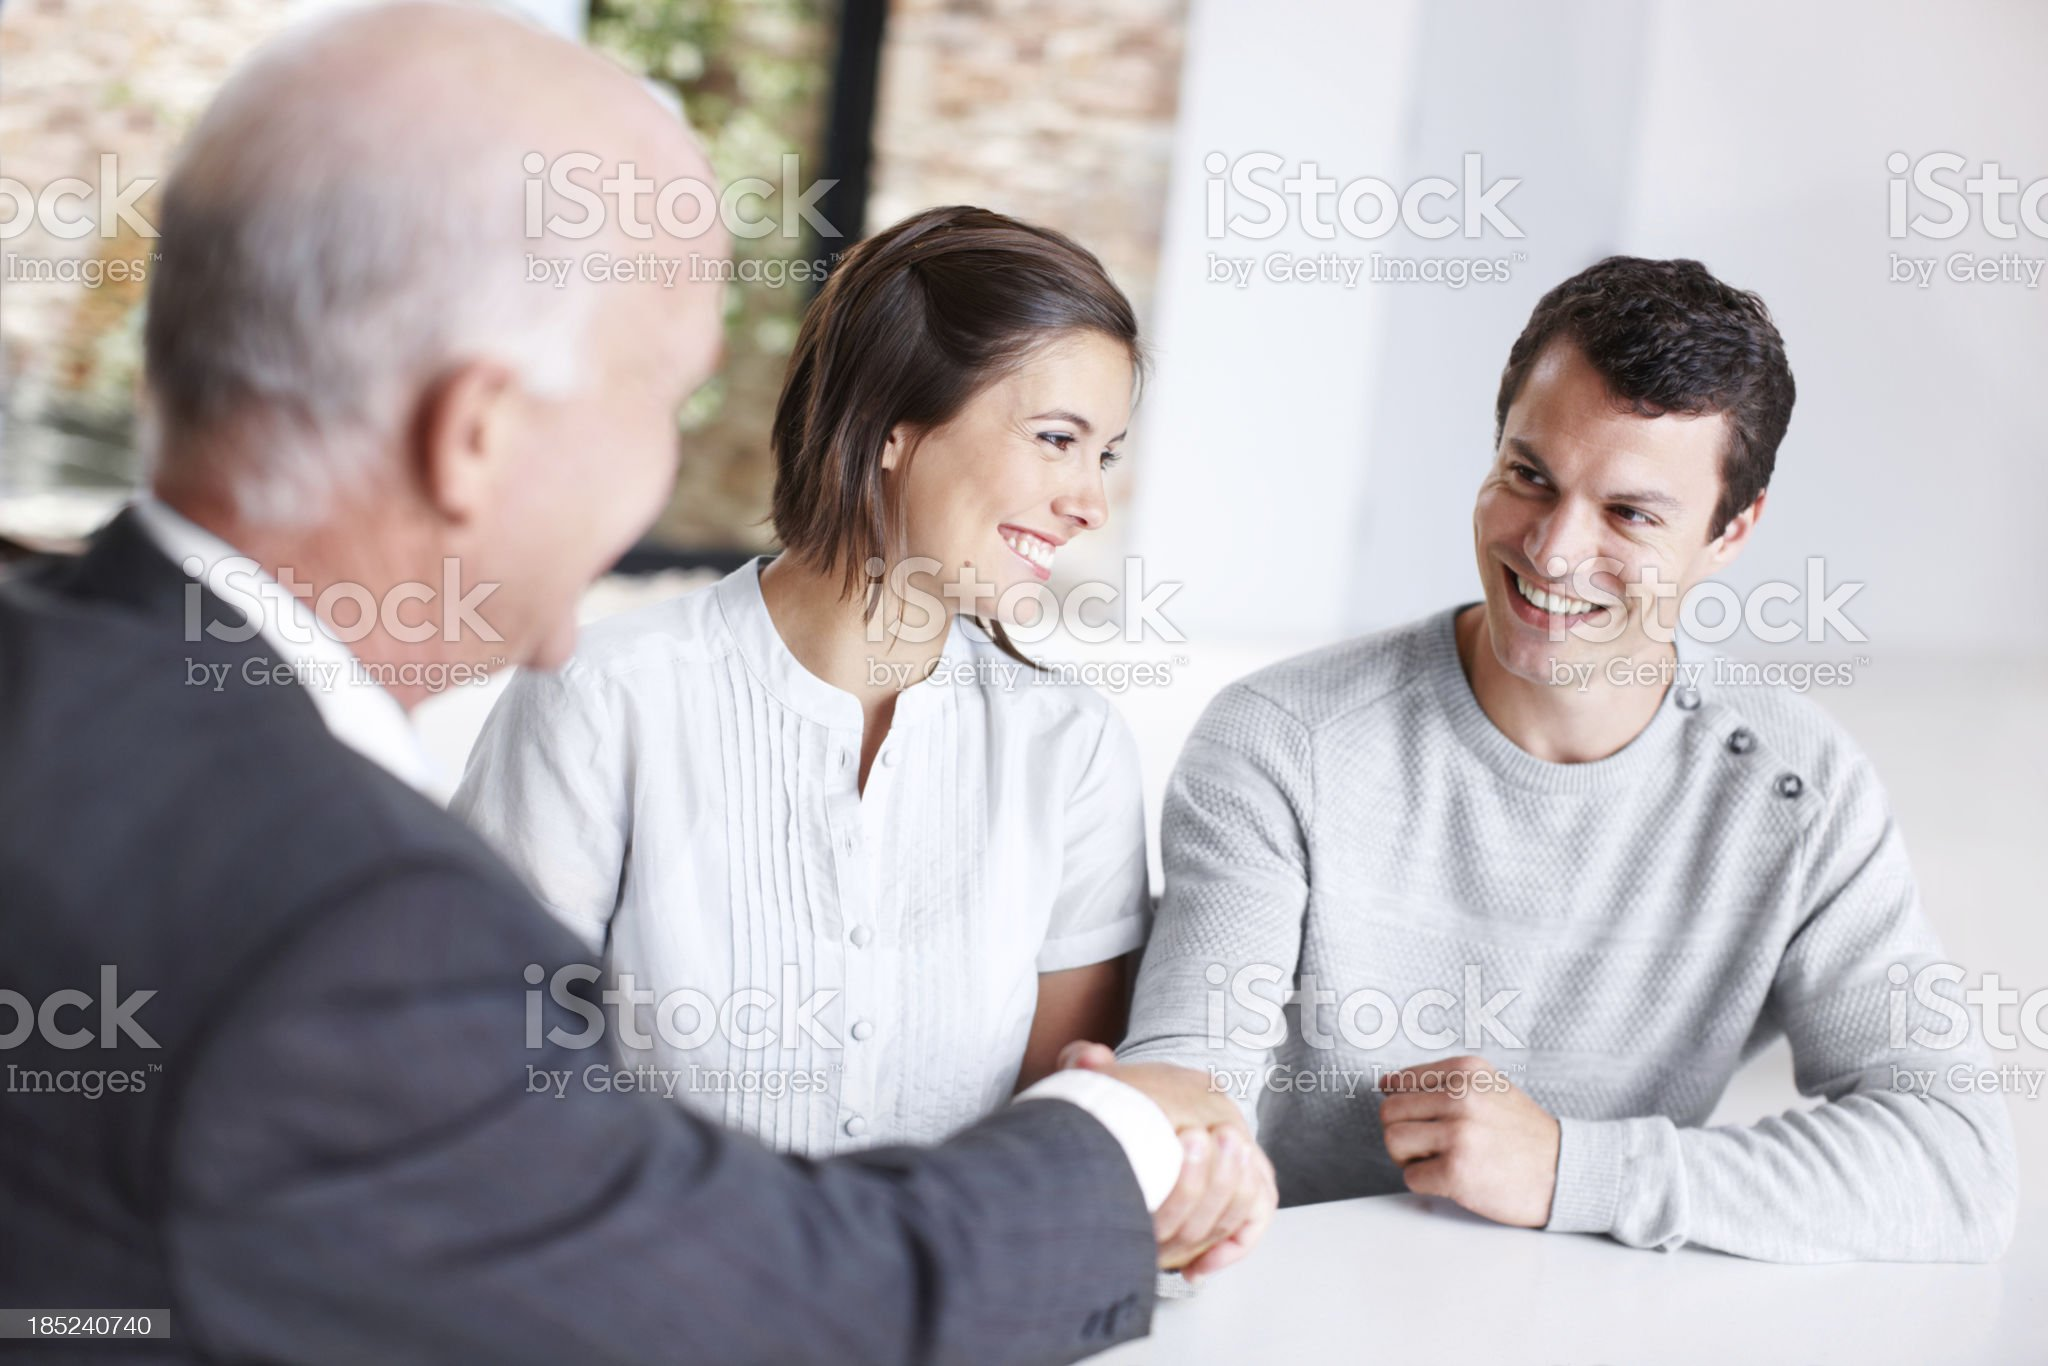 Sealing the deal with a smile royalty-free stock photo